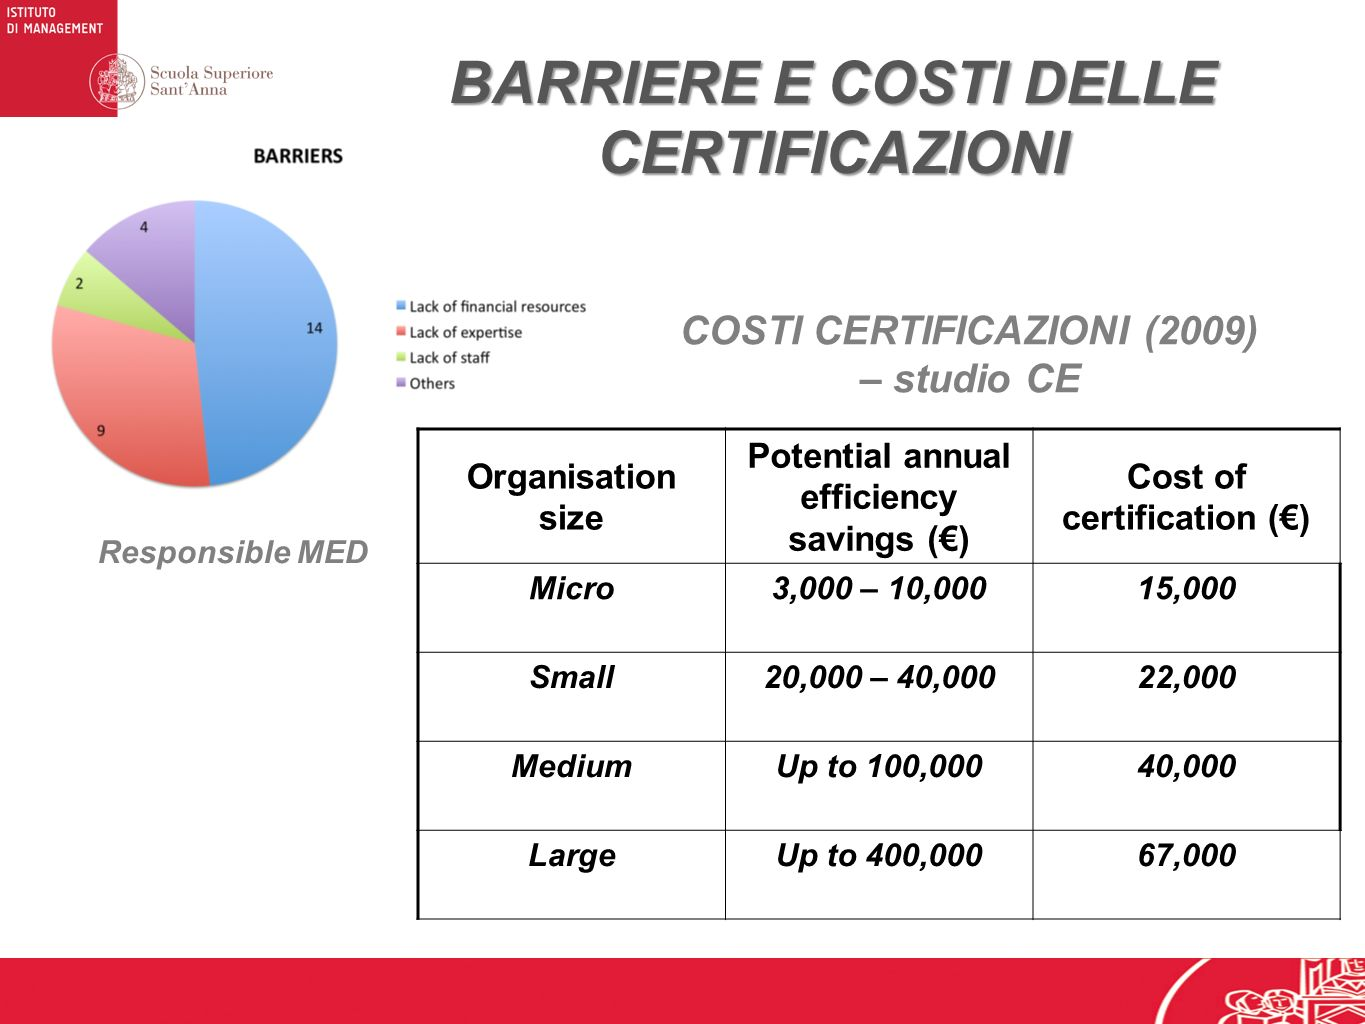 BARRIERE E COSTI DELLE CERTIFICAZIONI Responsible MED Organisation size Potential annual efficiency savings () Cost of certification () Micro3,000 – 10,00015,000 Small20,000 – 40,00022,000 MediumUp to 100,00040,000 LargeUp to 400,00067,000 COSTI CERTIFICAZIONI (2009) – studio CE